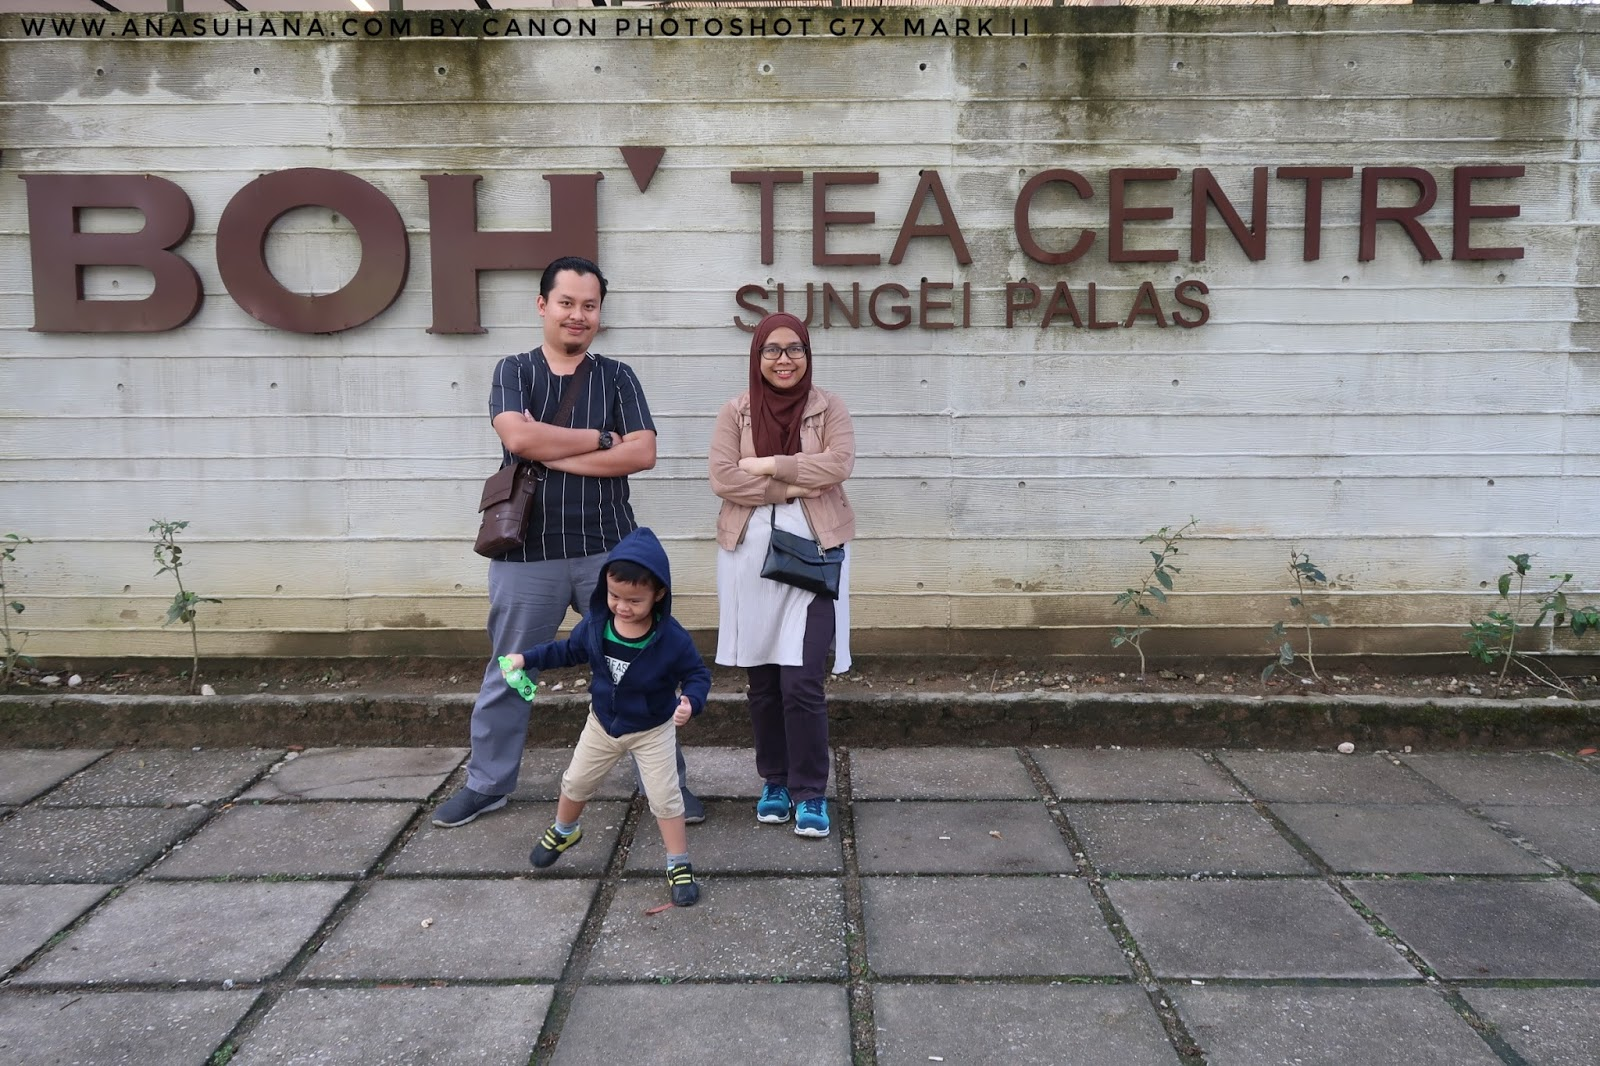 Tempat Menarik di Cameron Highlands : Cameron Valley Bharat Tea Plantation dan Boh Tea Centre Sungai Palas